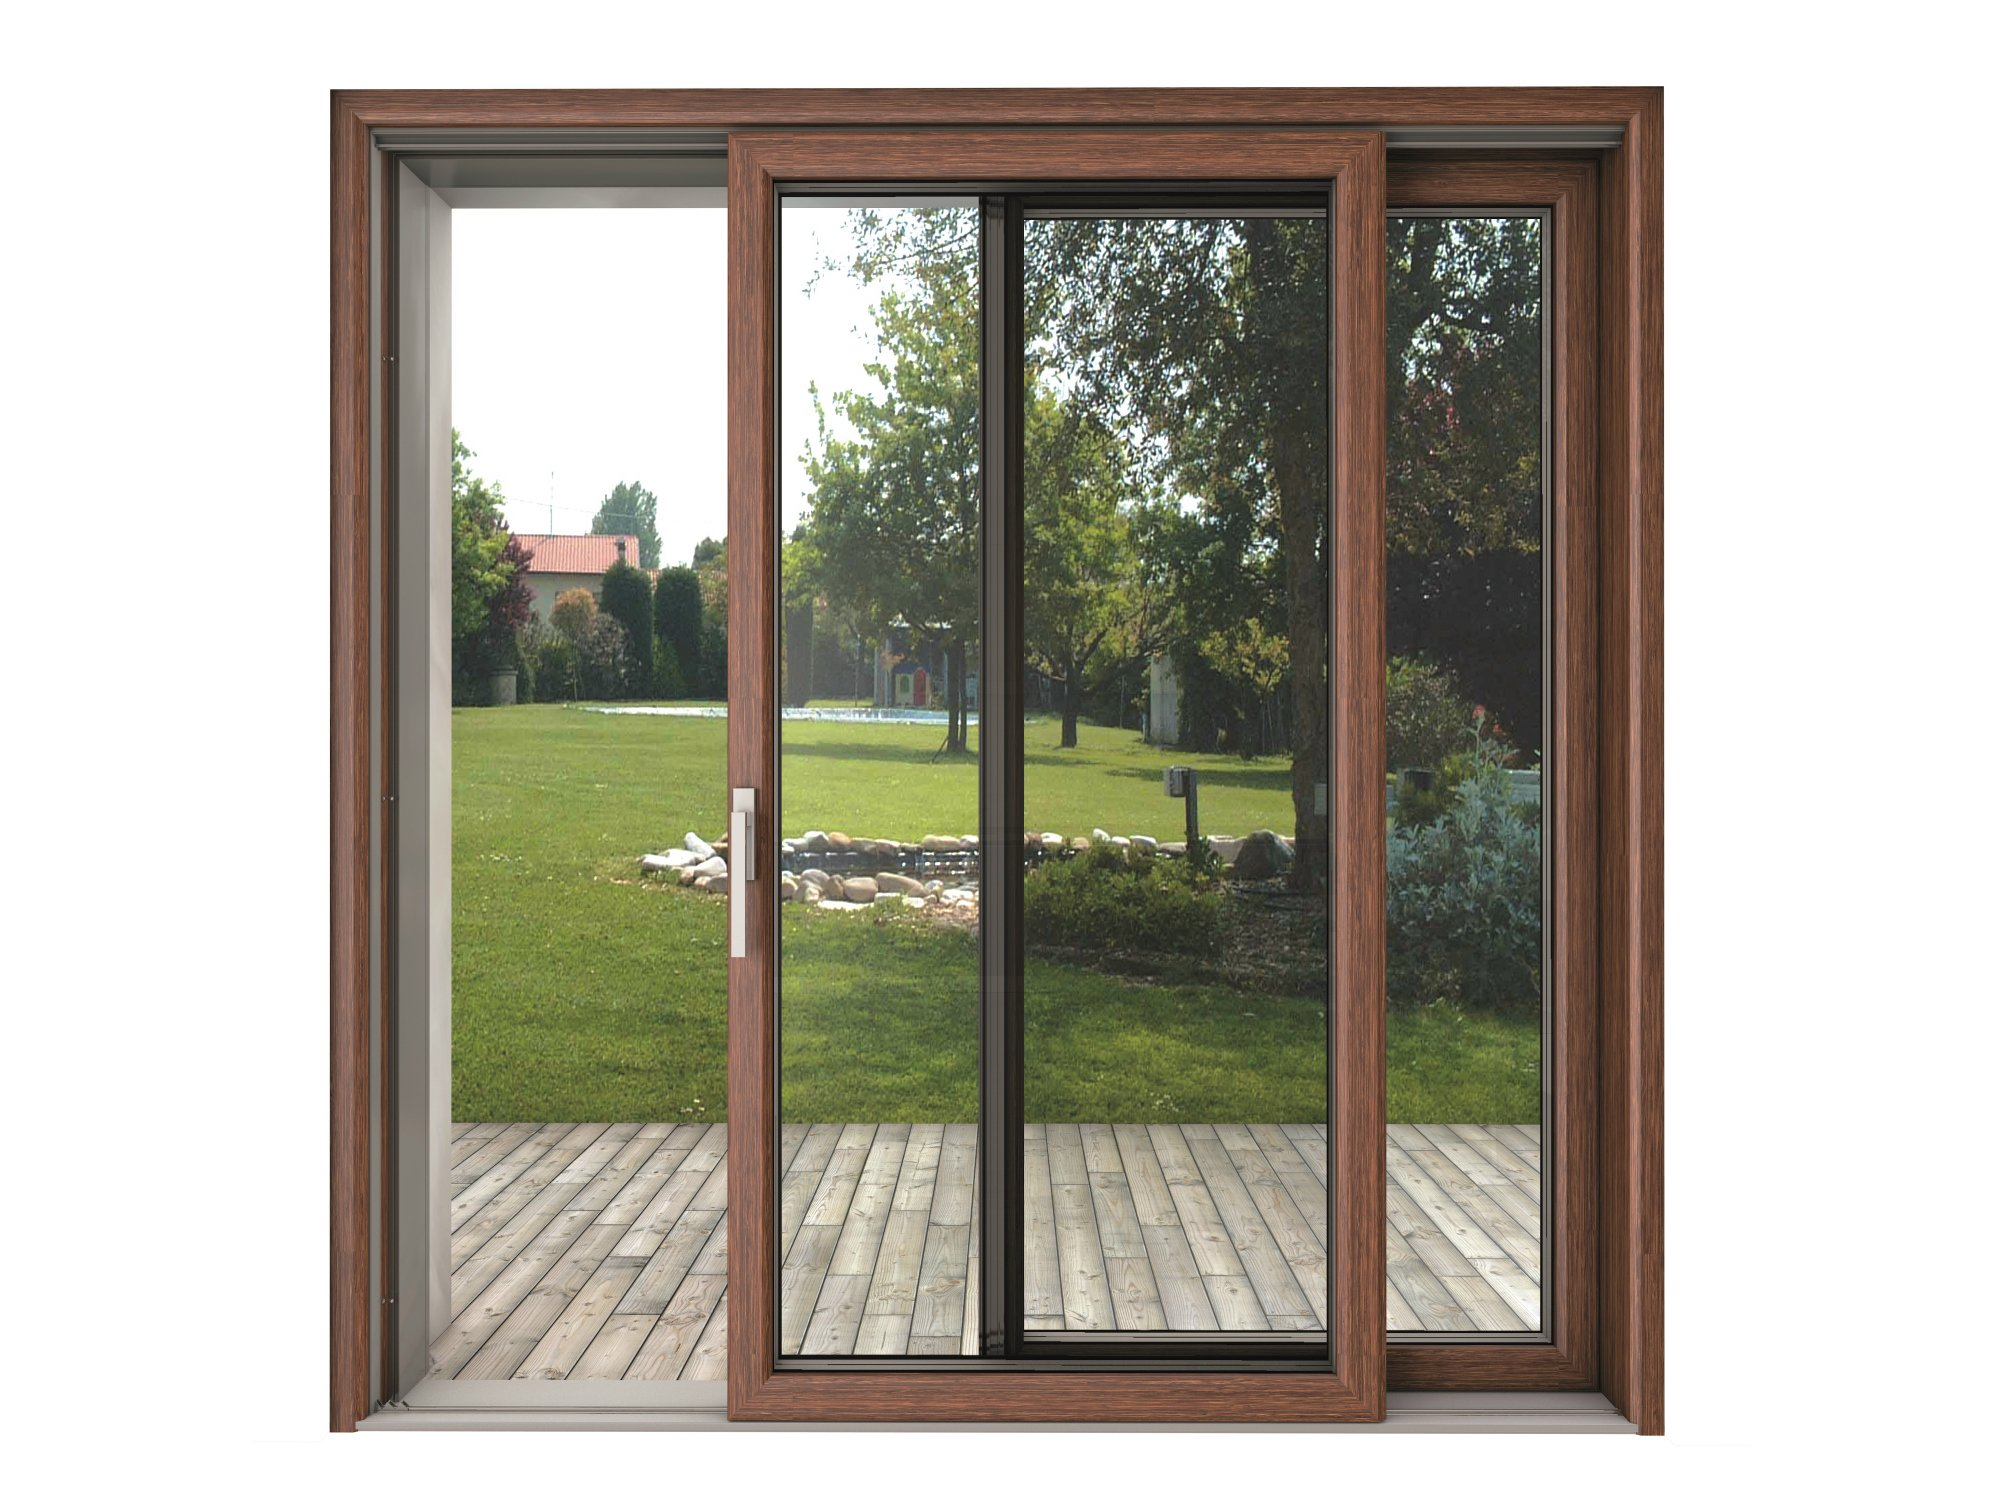 Blindoklima wood sliding window by sl di sabatino liberato for Sliding glass windows